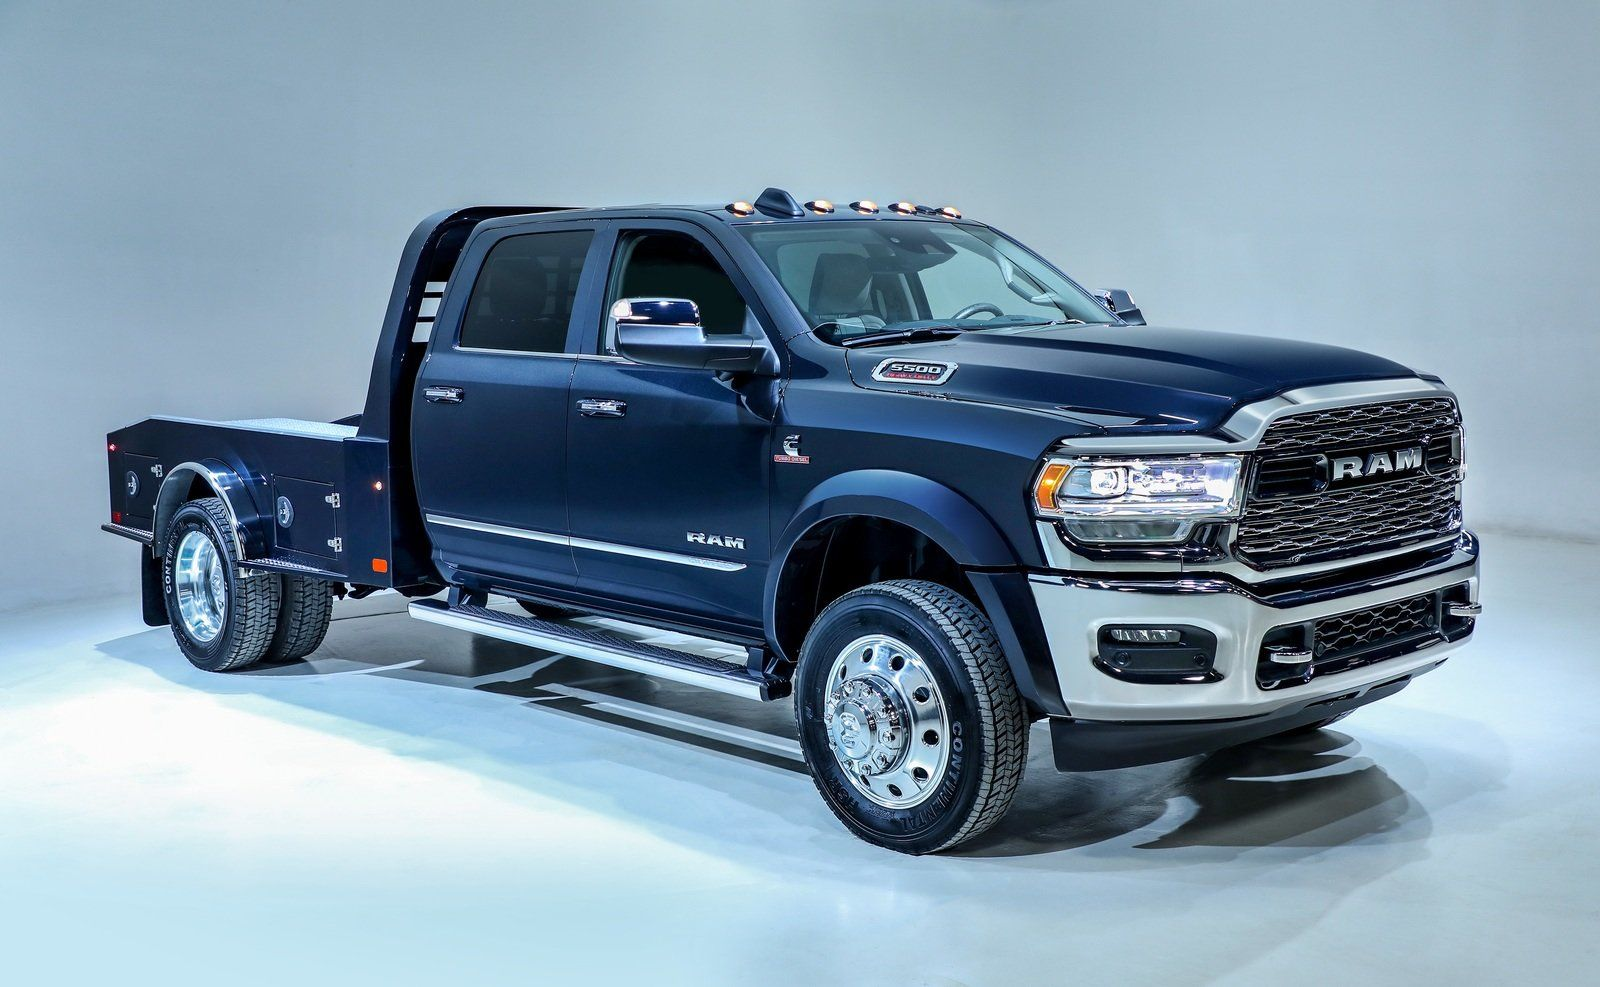 2020 Ram Chassis Cab Brings A New Generation Of Work Trucks To Chicago Image 820440 Work Truck Trucks Pickup Trucks